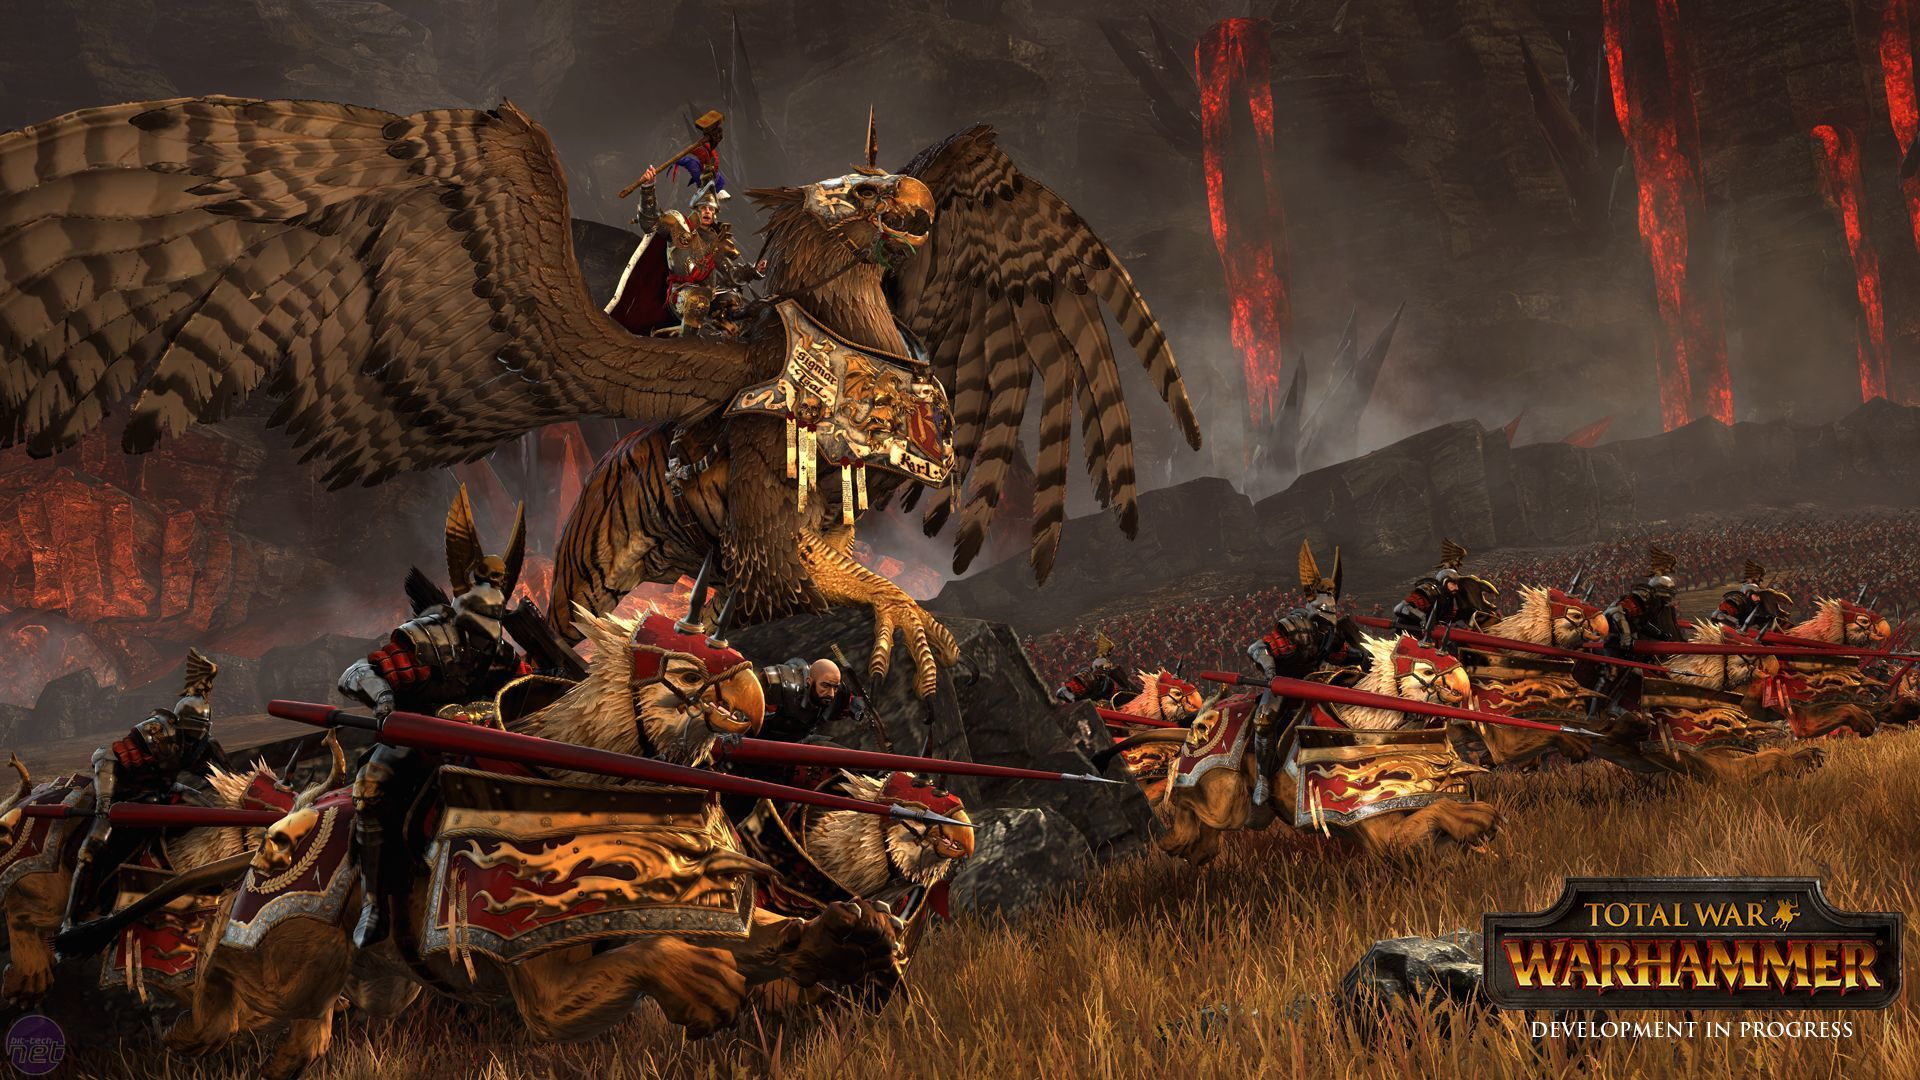 Obviously the other thing with Warhammer is its turn based Total War 1920x1080